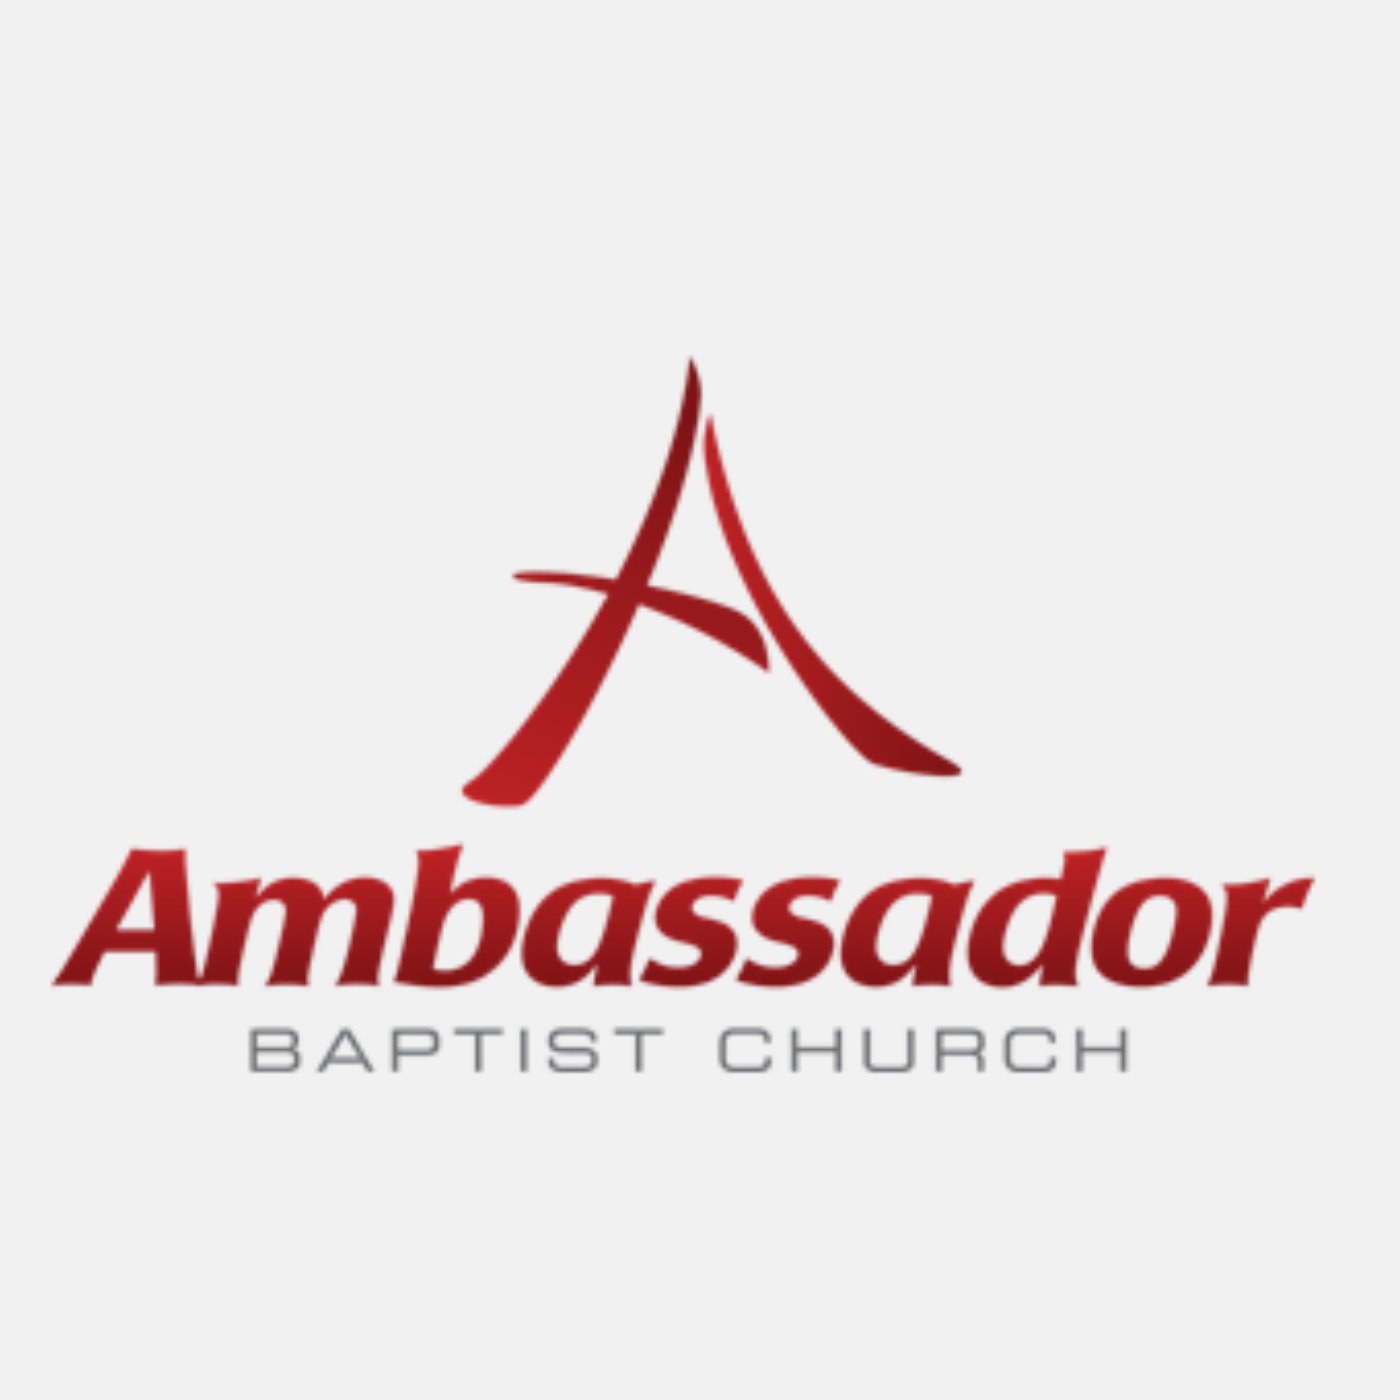 Ambassador Baptist Church, Royal Oak, MI